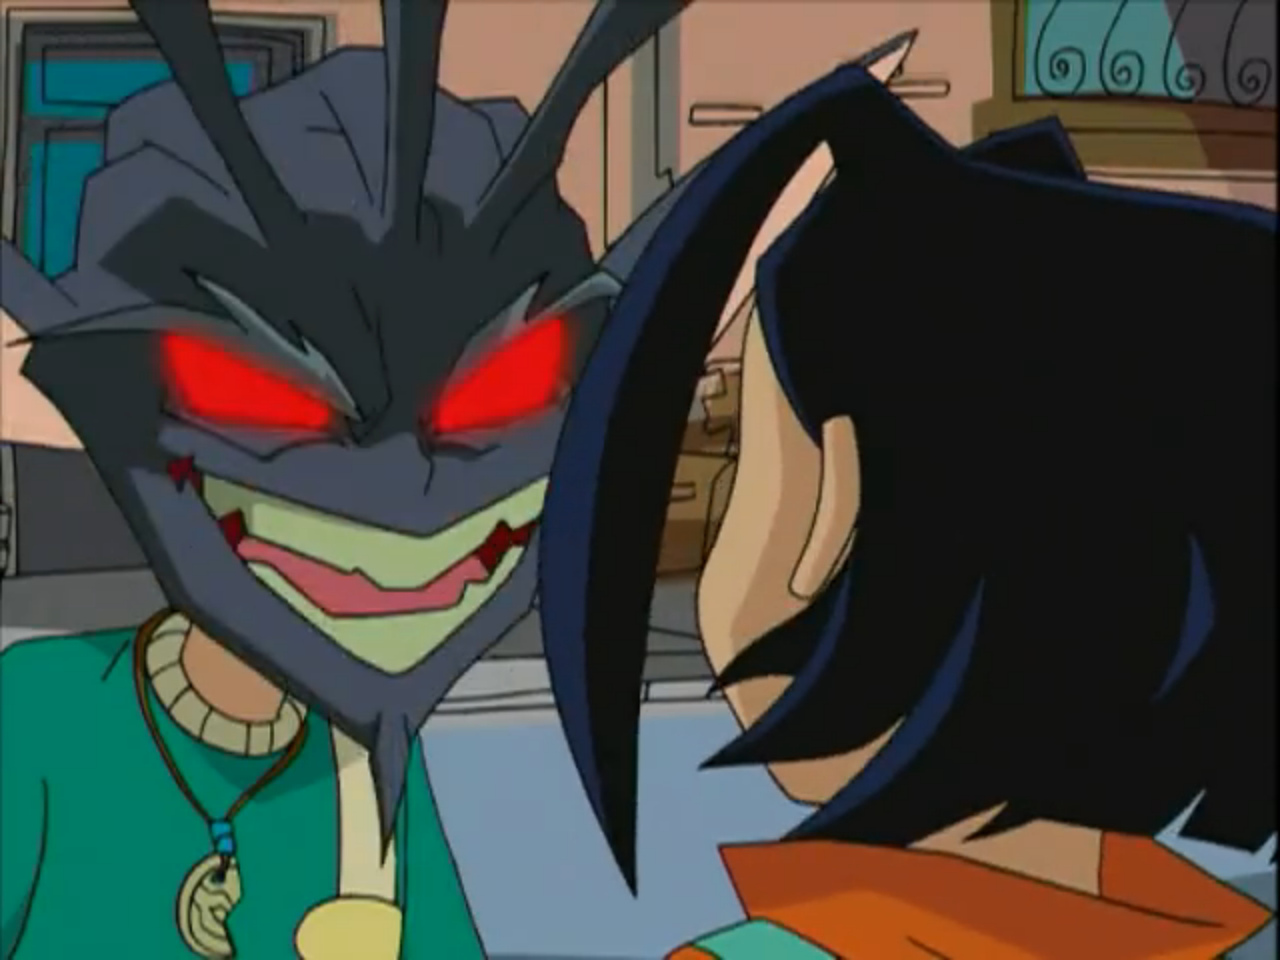 This was also one of the best episodes in the series as well.  The Rooster and Rabbit Talismans were just icing on the cake.  Image from the Jackie Chan Adventures wiki